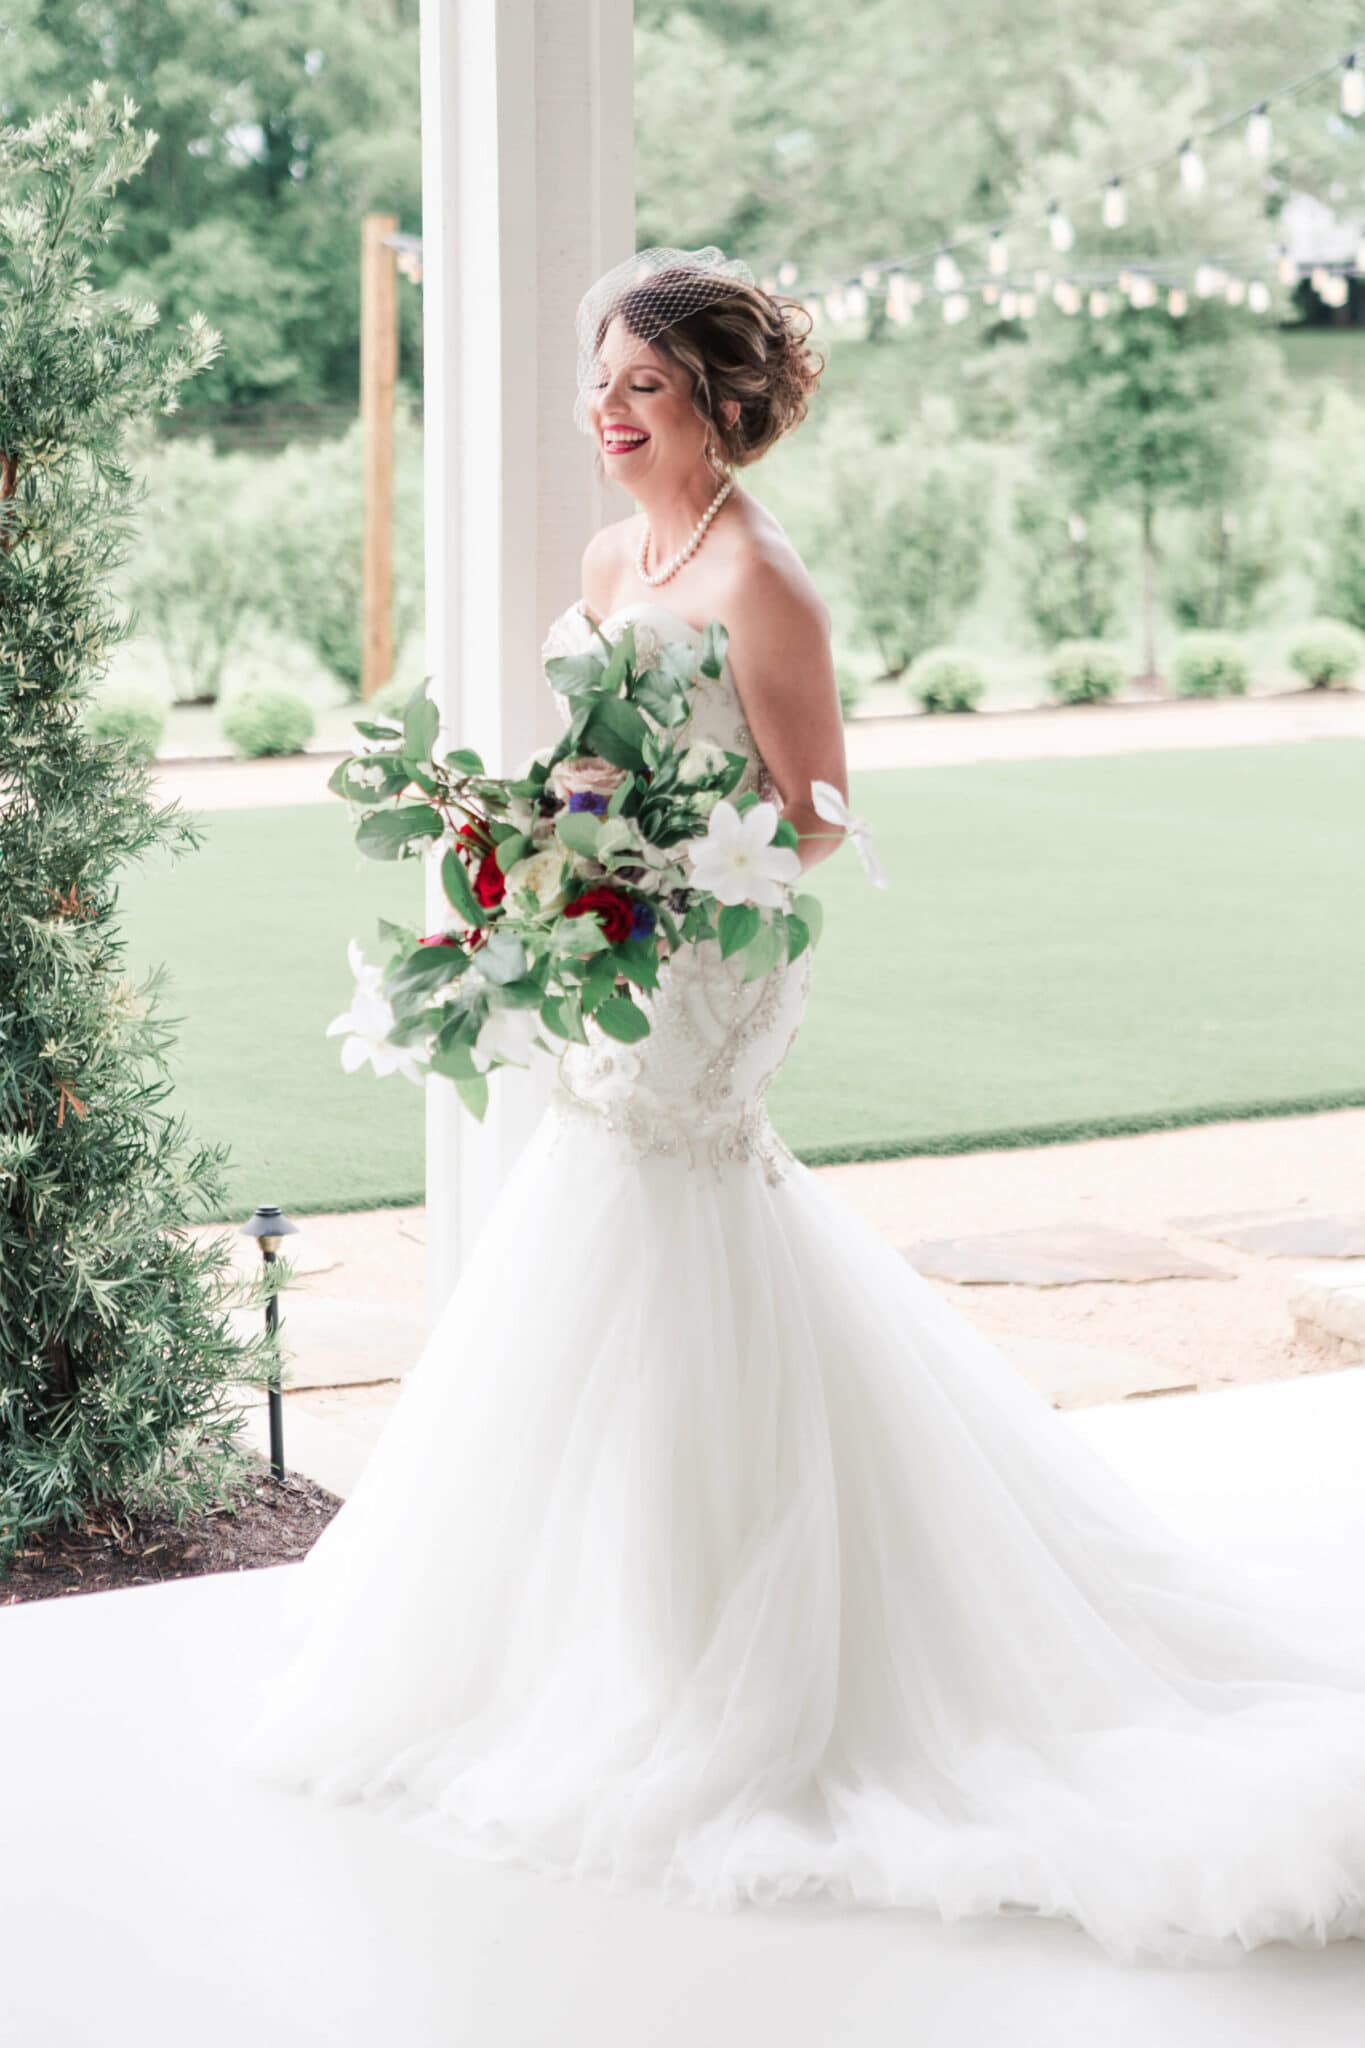 bridal session at The Farmhouse in Magnolia, Texas photographed by Swish and Click Photography